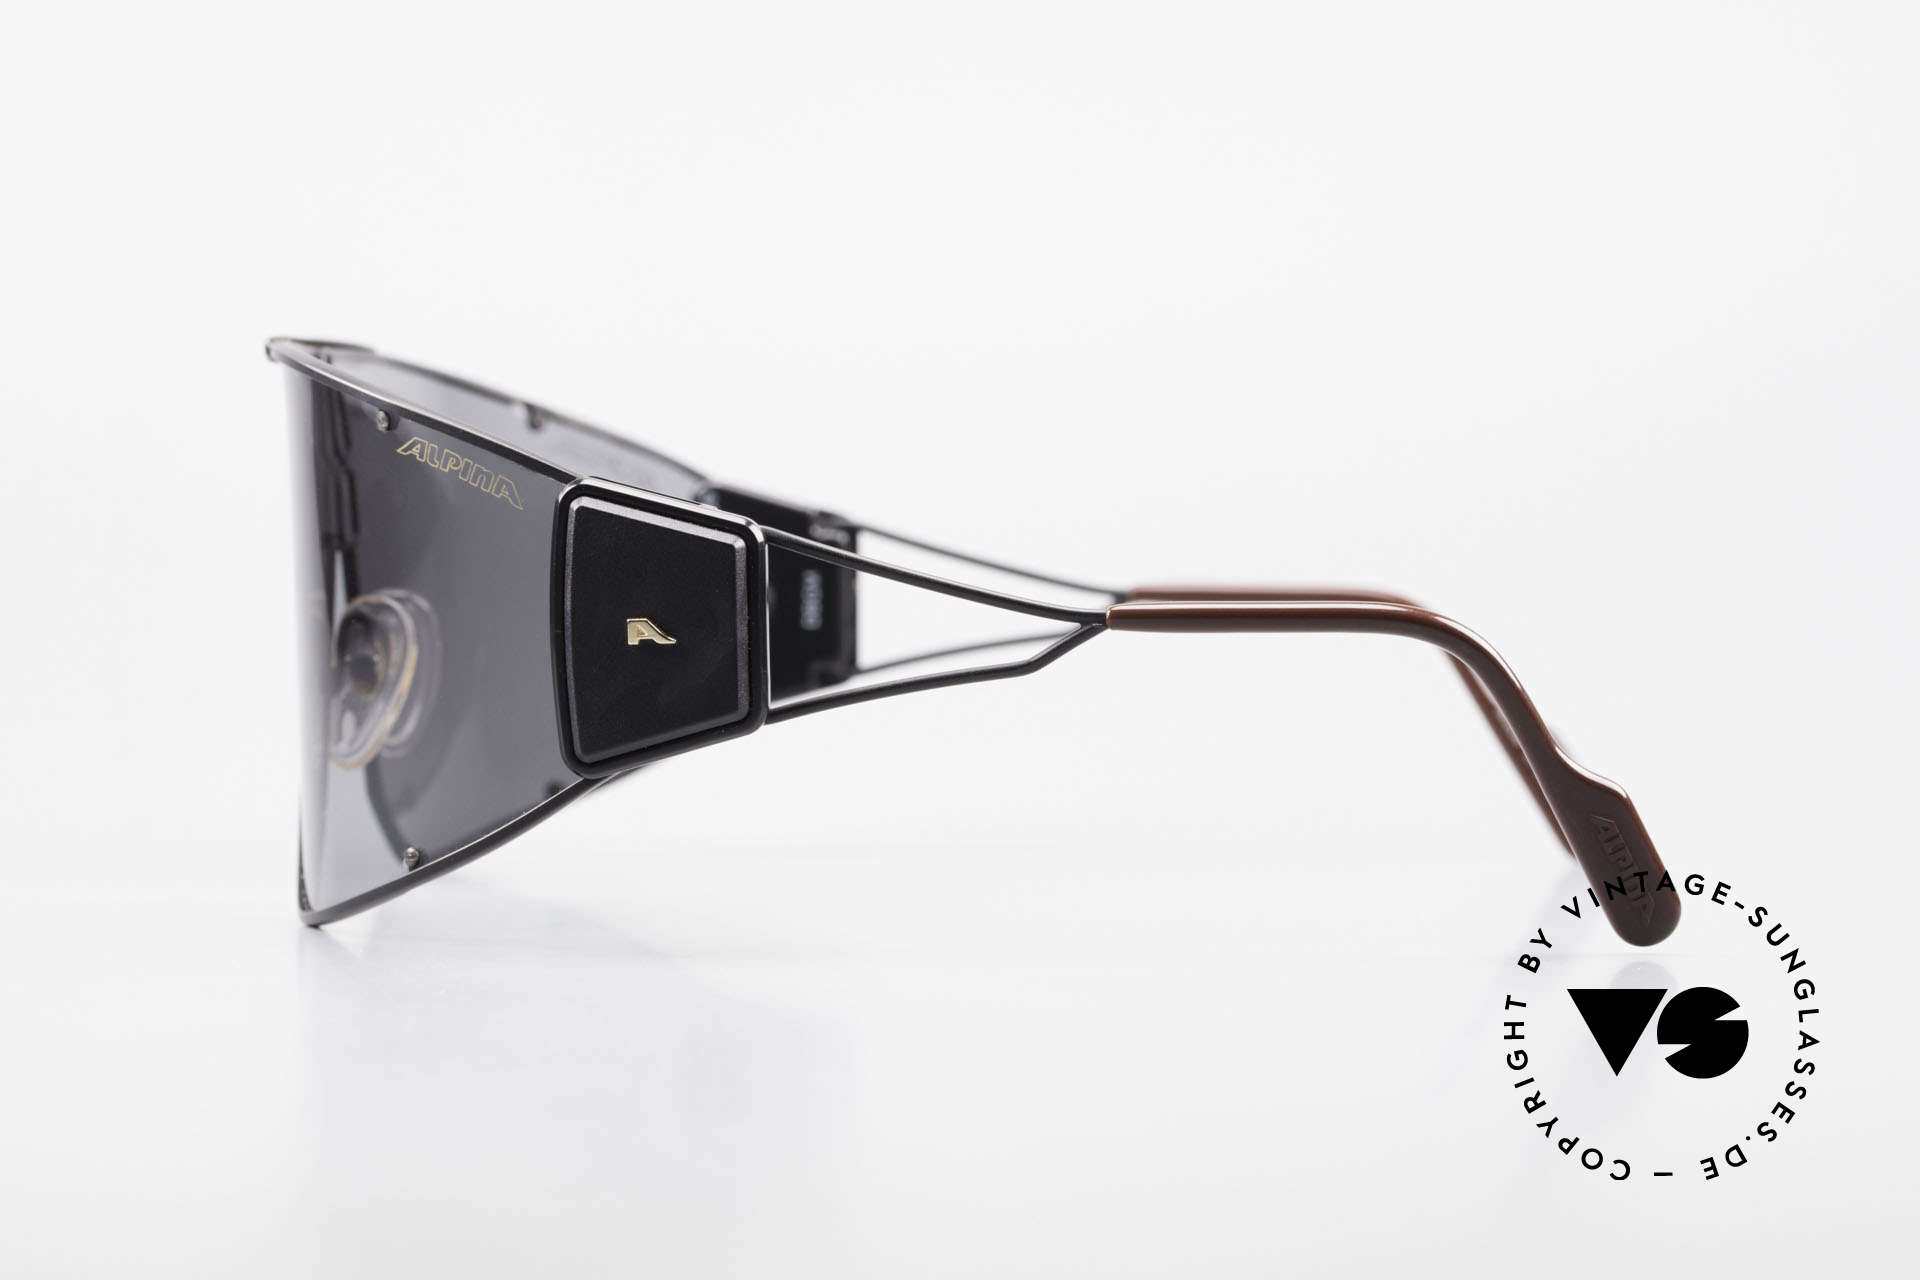 Alpina Goldwing Rare 80's Celebrity Sunglasses, almost impossible to get, today (a real museum piece), Made for Men and Women